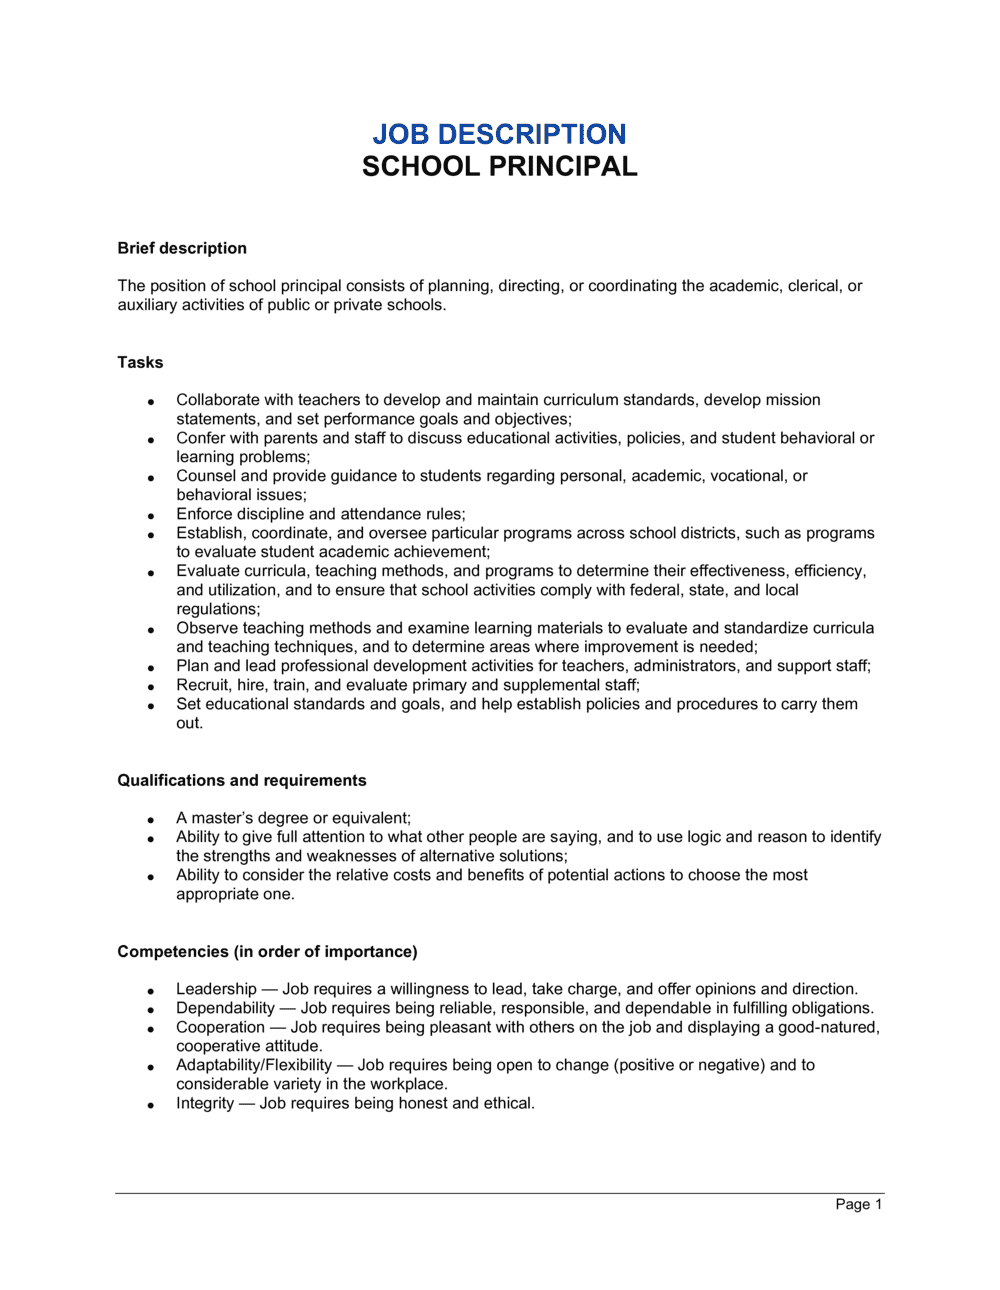 Business-in-a-Box's School Principal Job Description Template